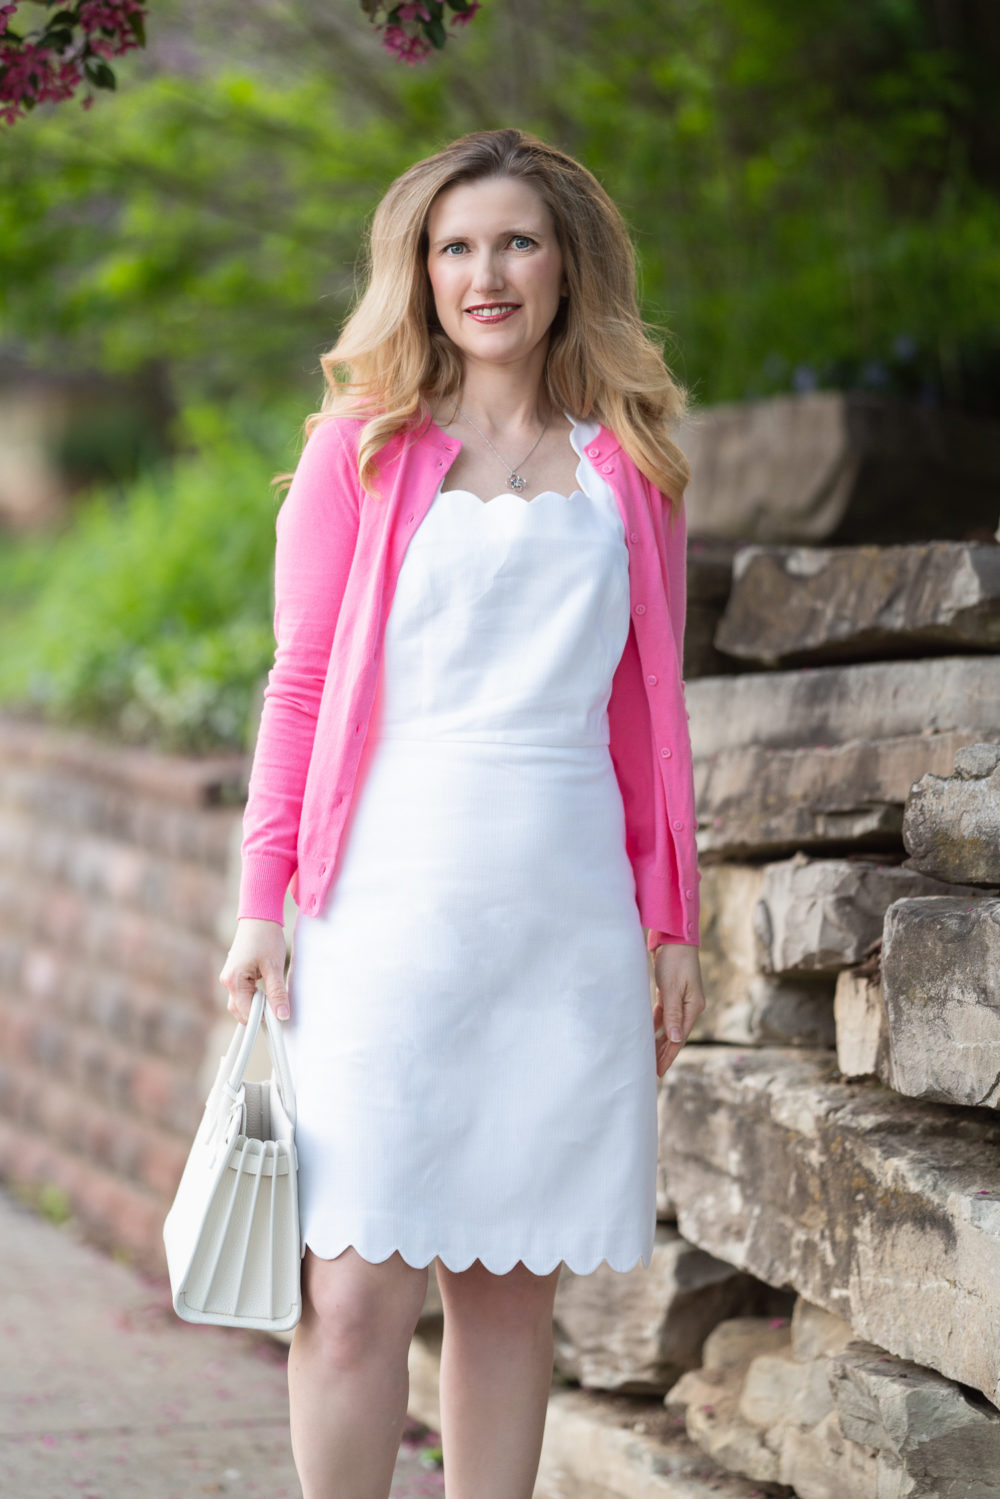 Petite Fashion Blog | J. Crew Factory Basketweave scallop-edge dress | J. Crew Factory Cardigan | Pink Cardigan | White Dresses